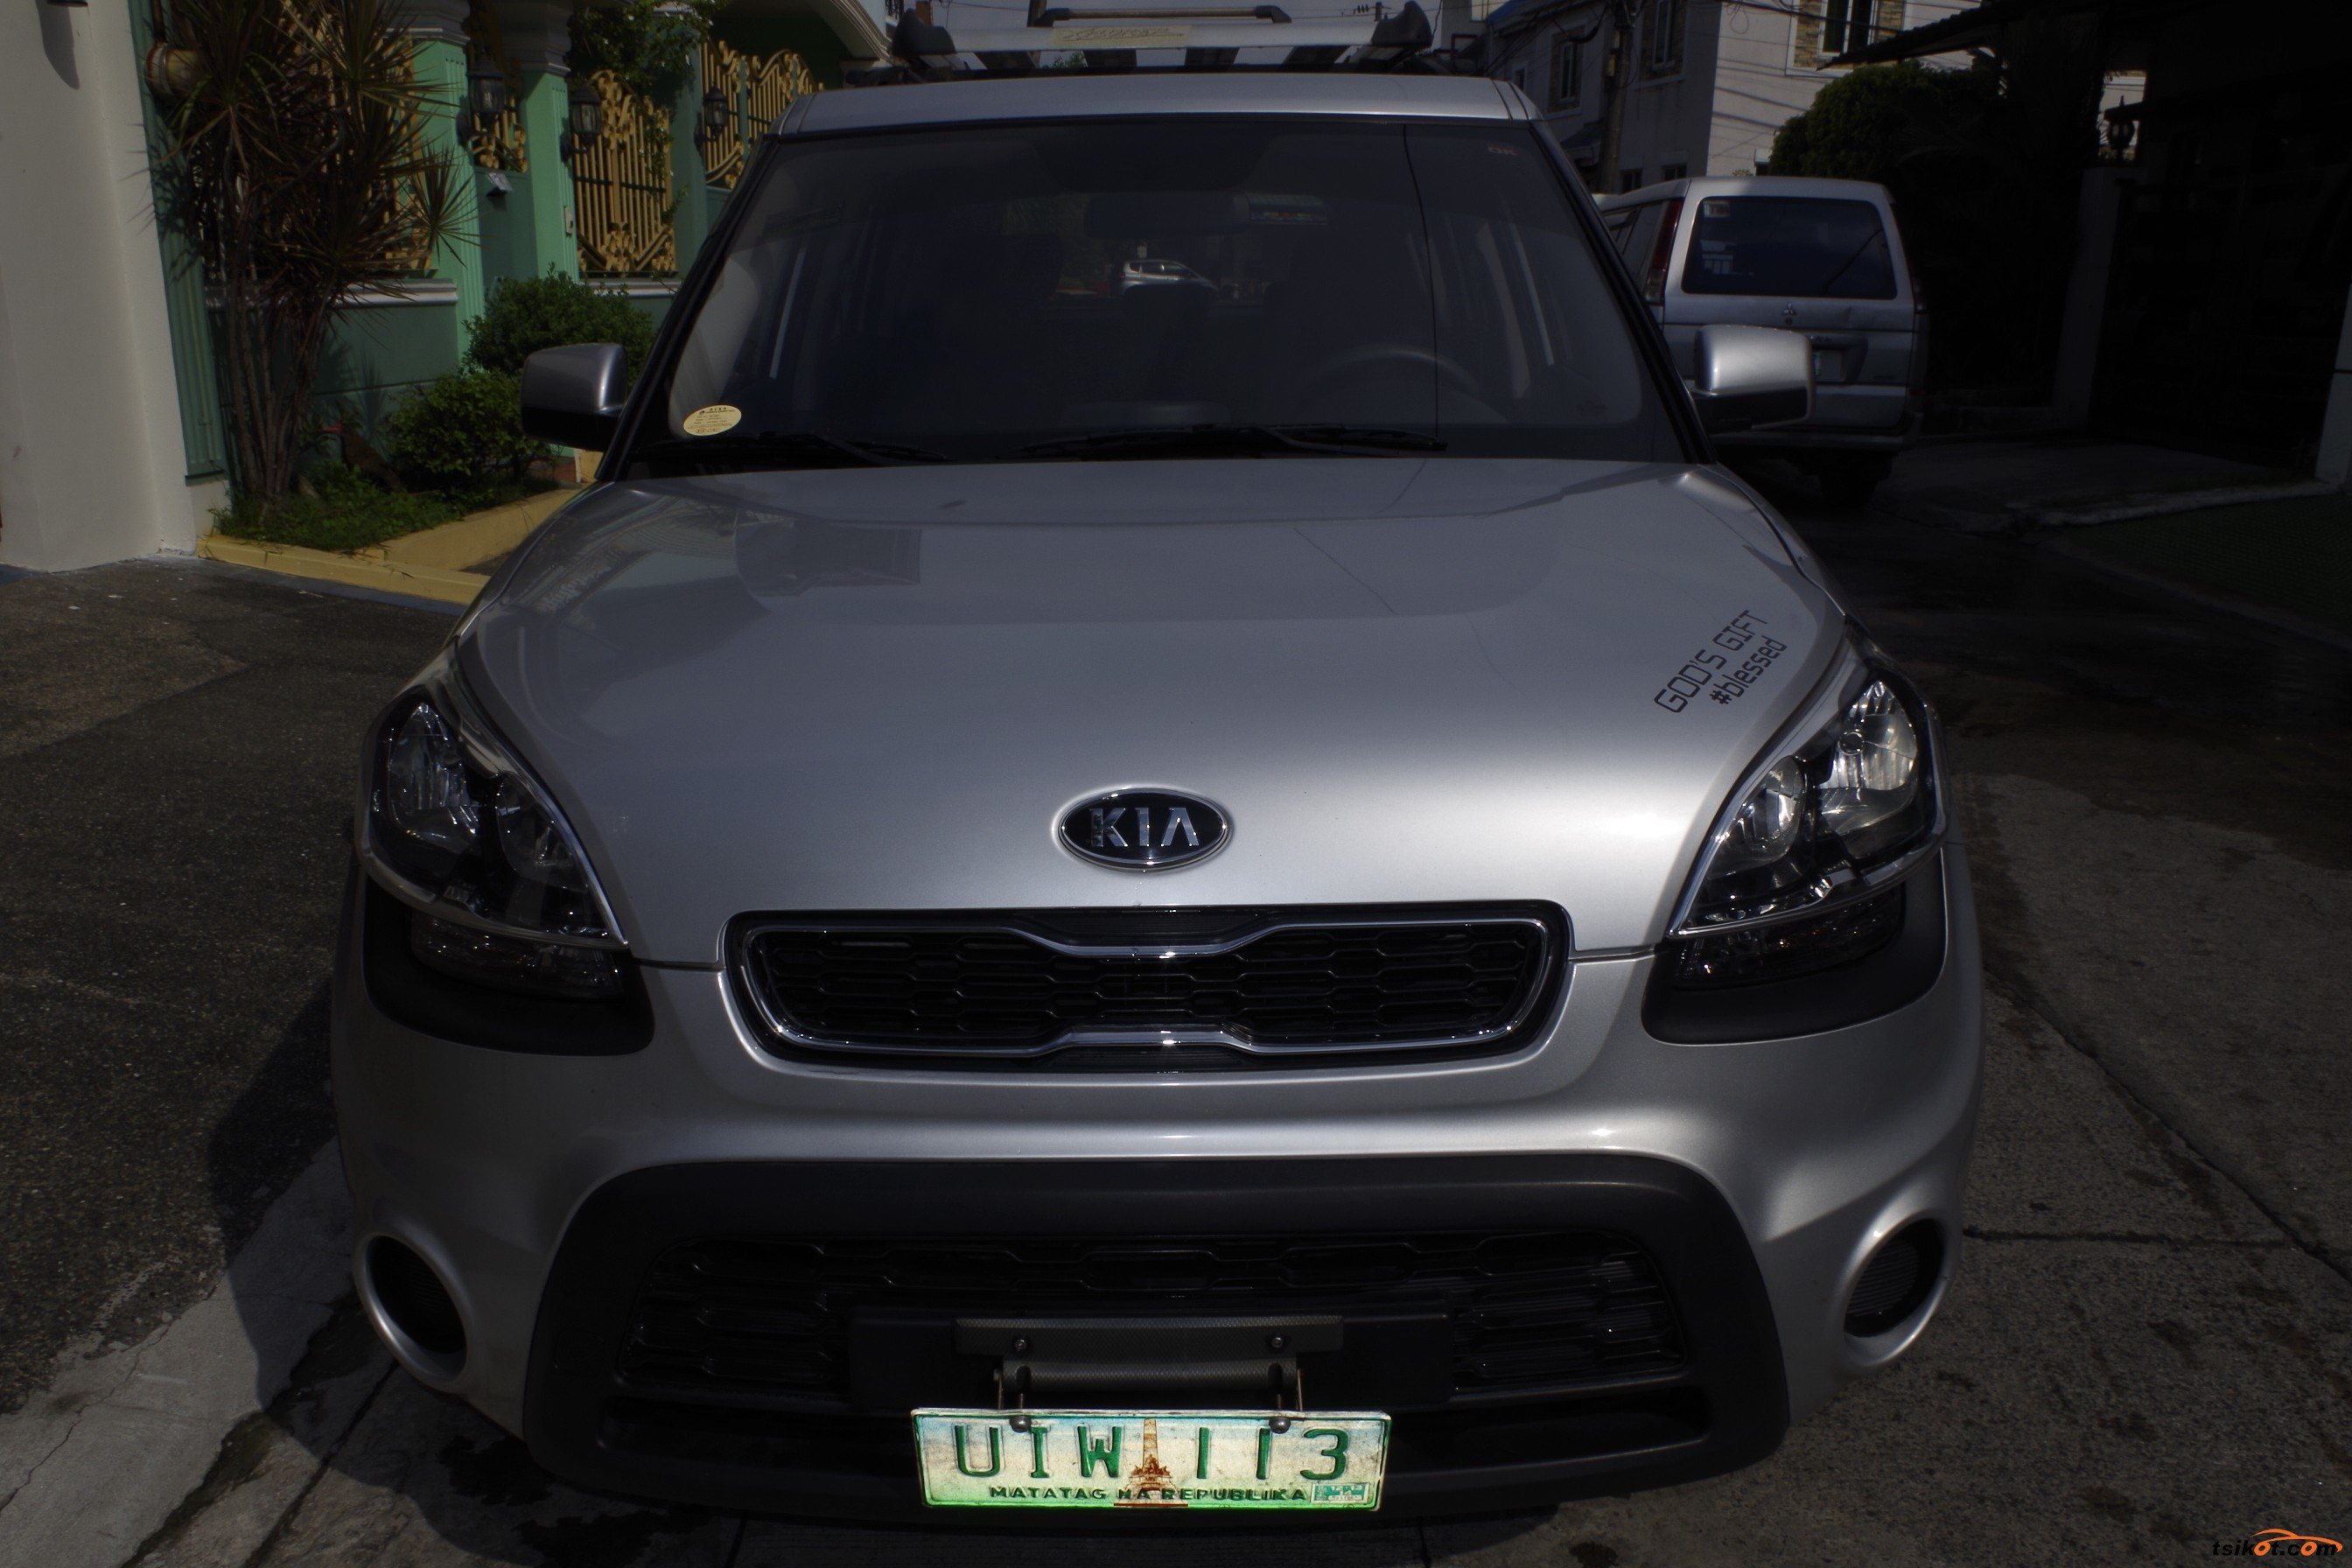 kia soul 2012 car for sale metro manila. Black Bedroom Furniture Sets. Home Design Ideas